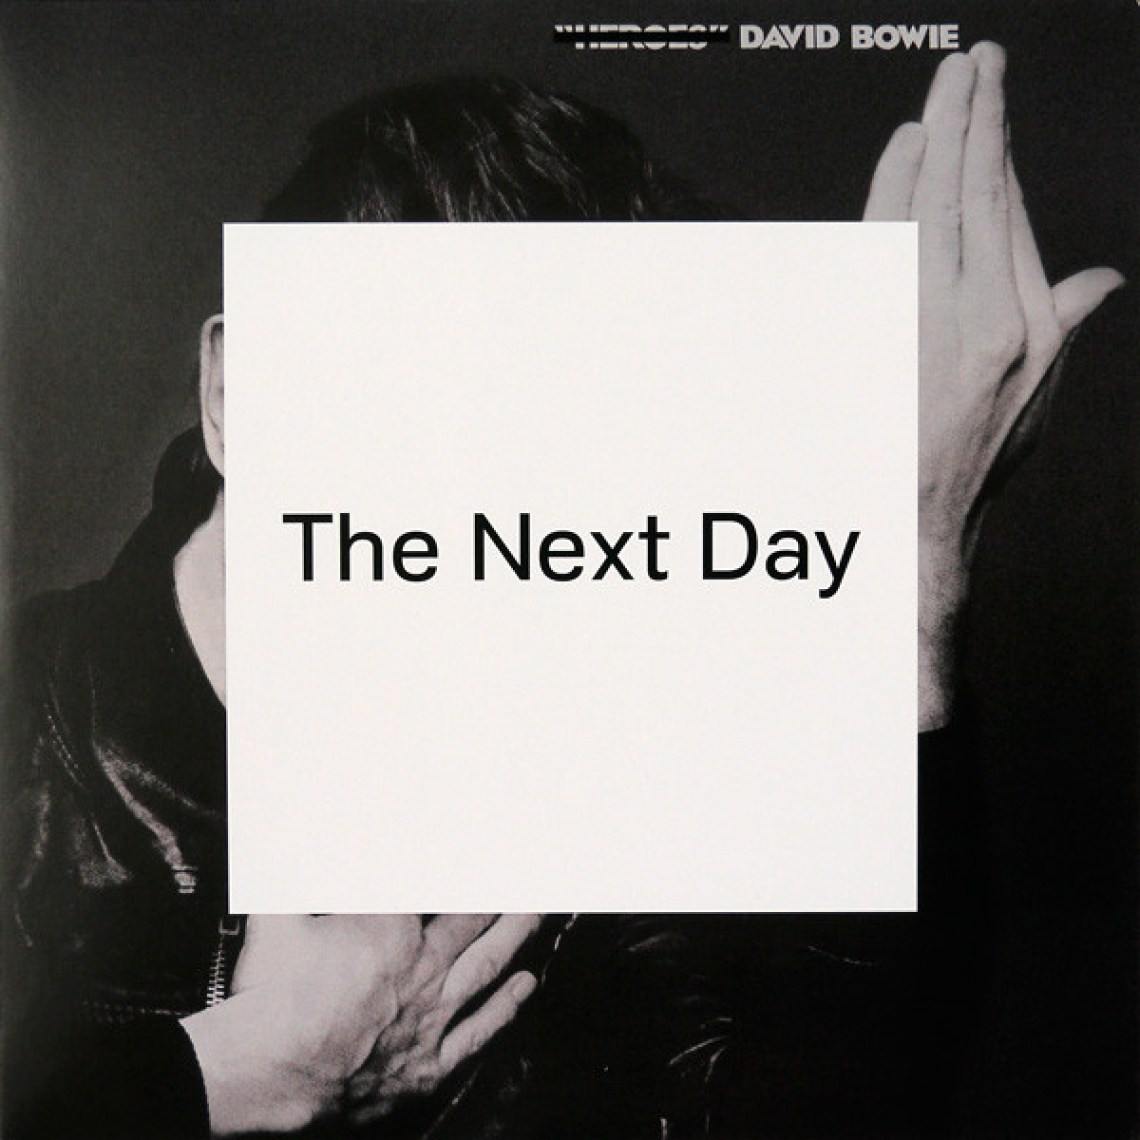 The Next Day (2013) album cover, David Bowie.